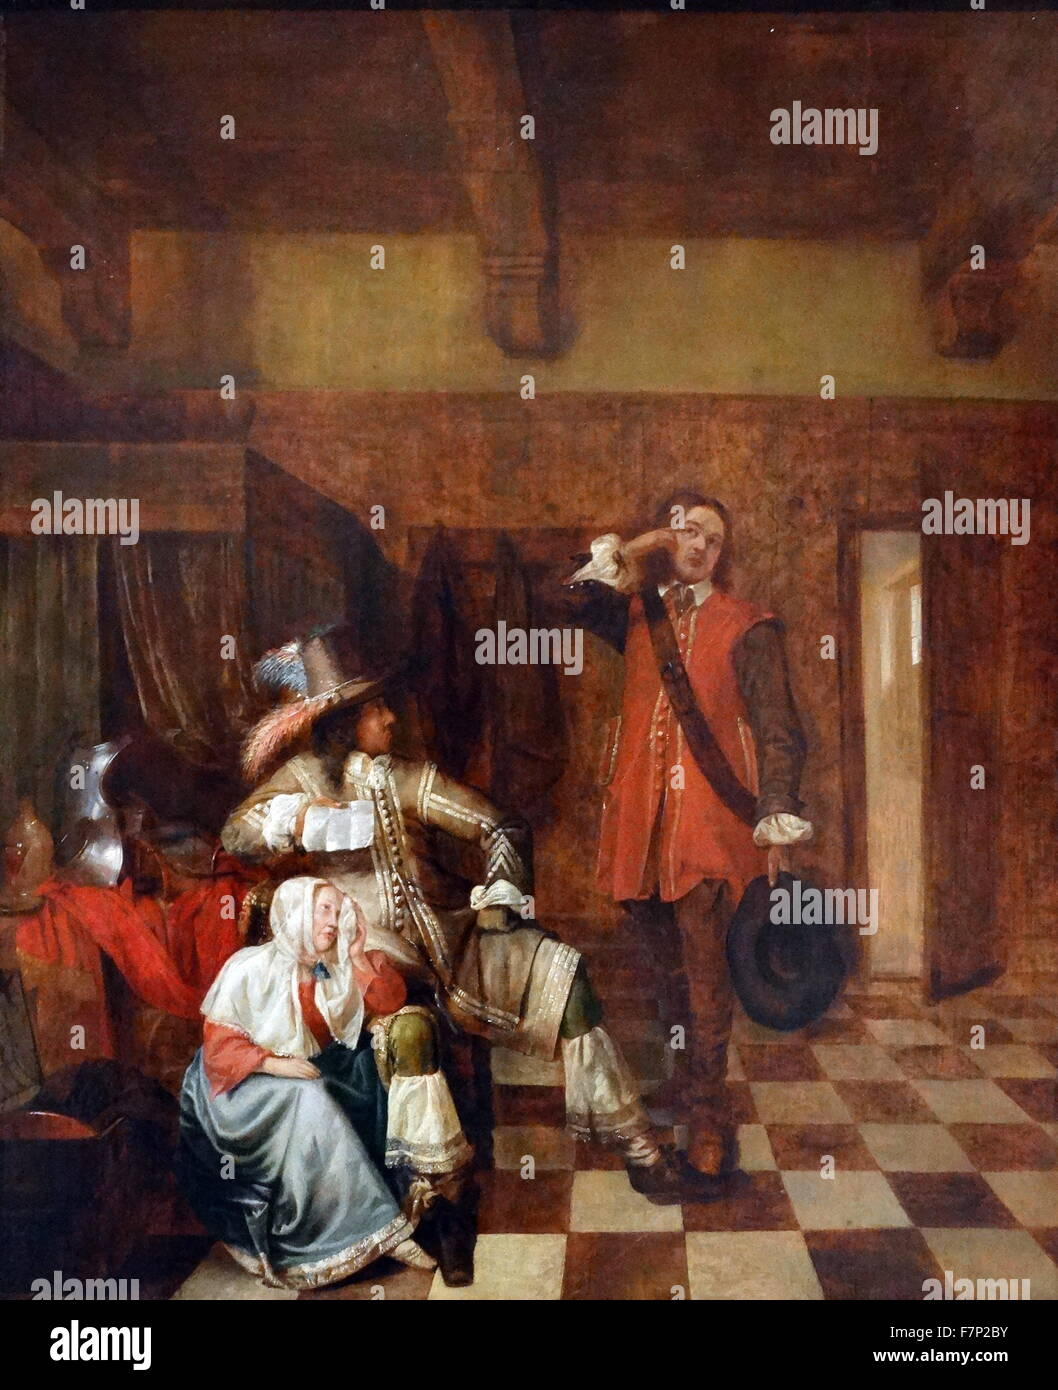 Painting titled 'The Bearer of Bad News' by Pieter de Hooch Stock